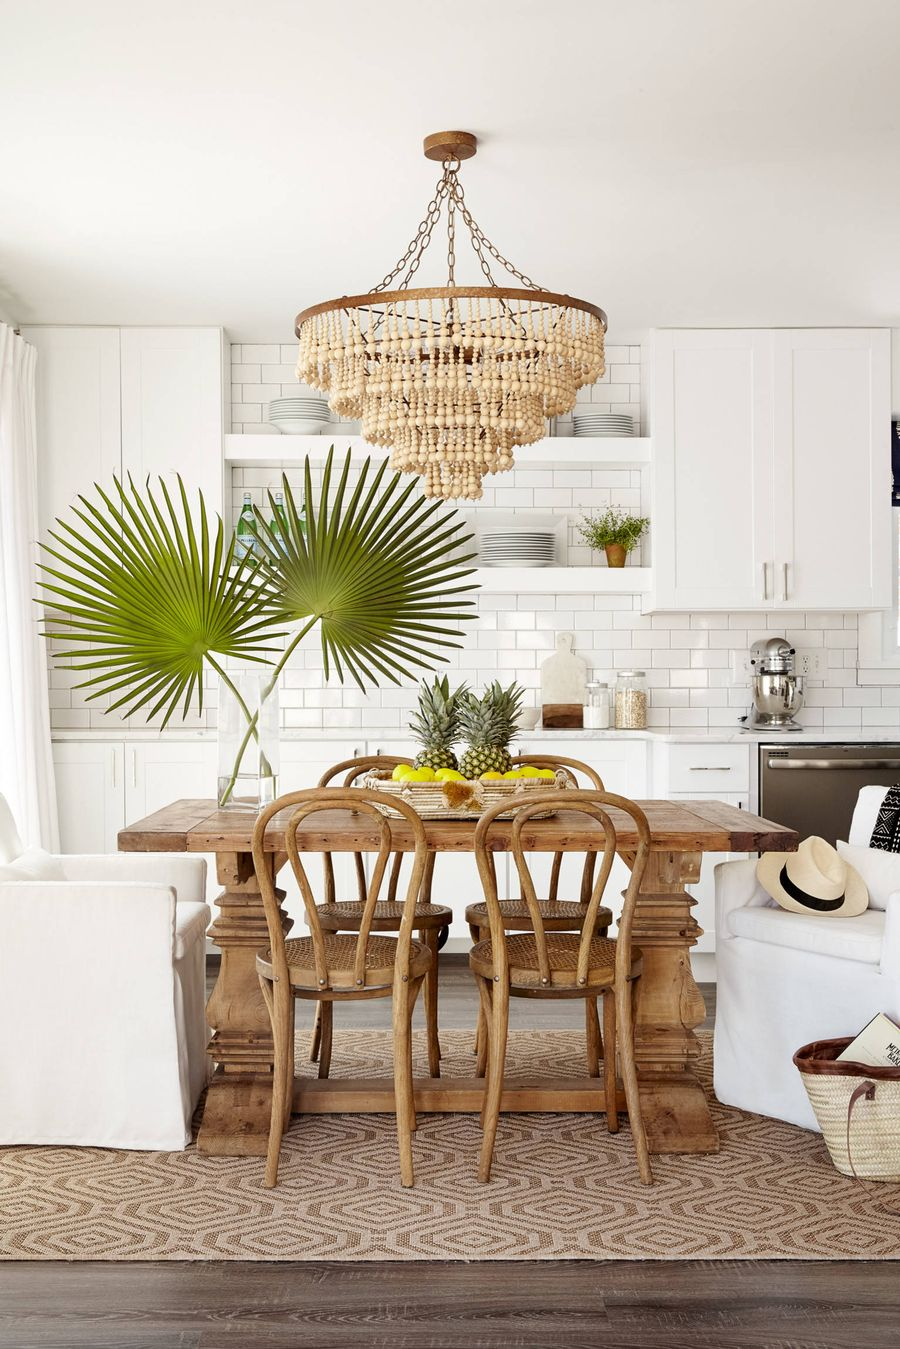 10 Best Tropical Dining Room Decor Ideas, Tropical Dining Room Chairs